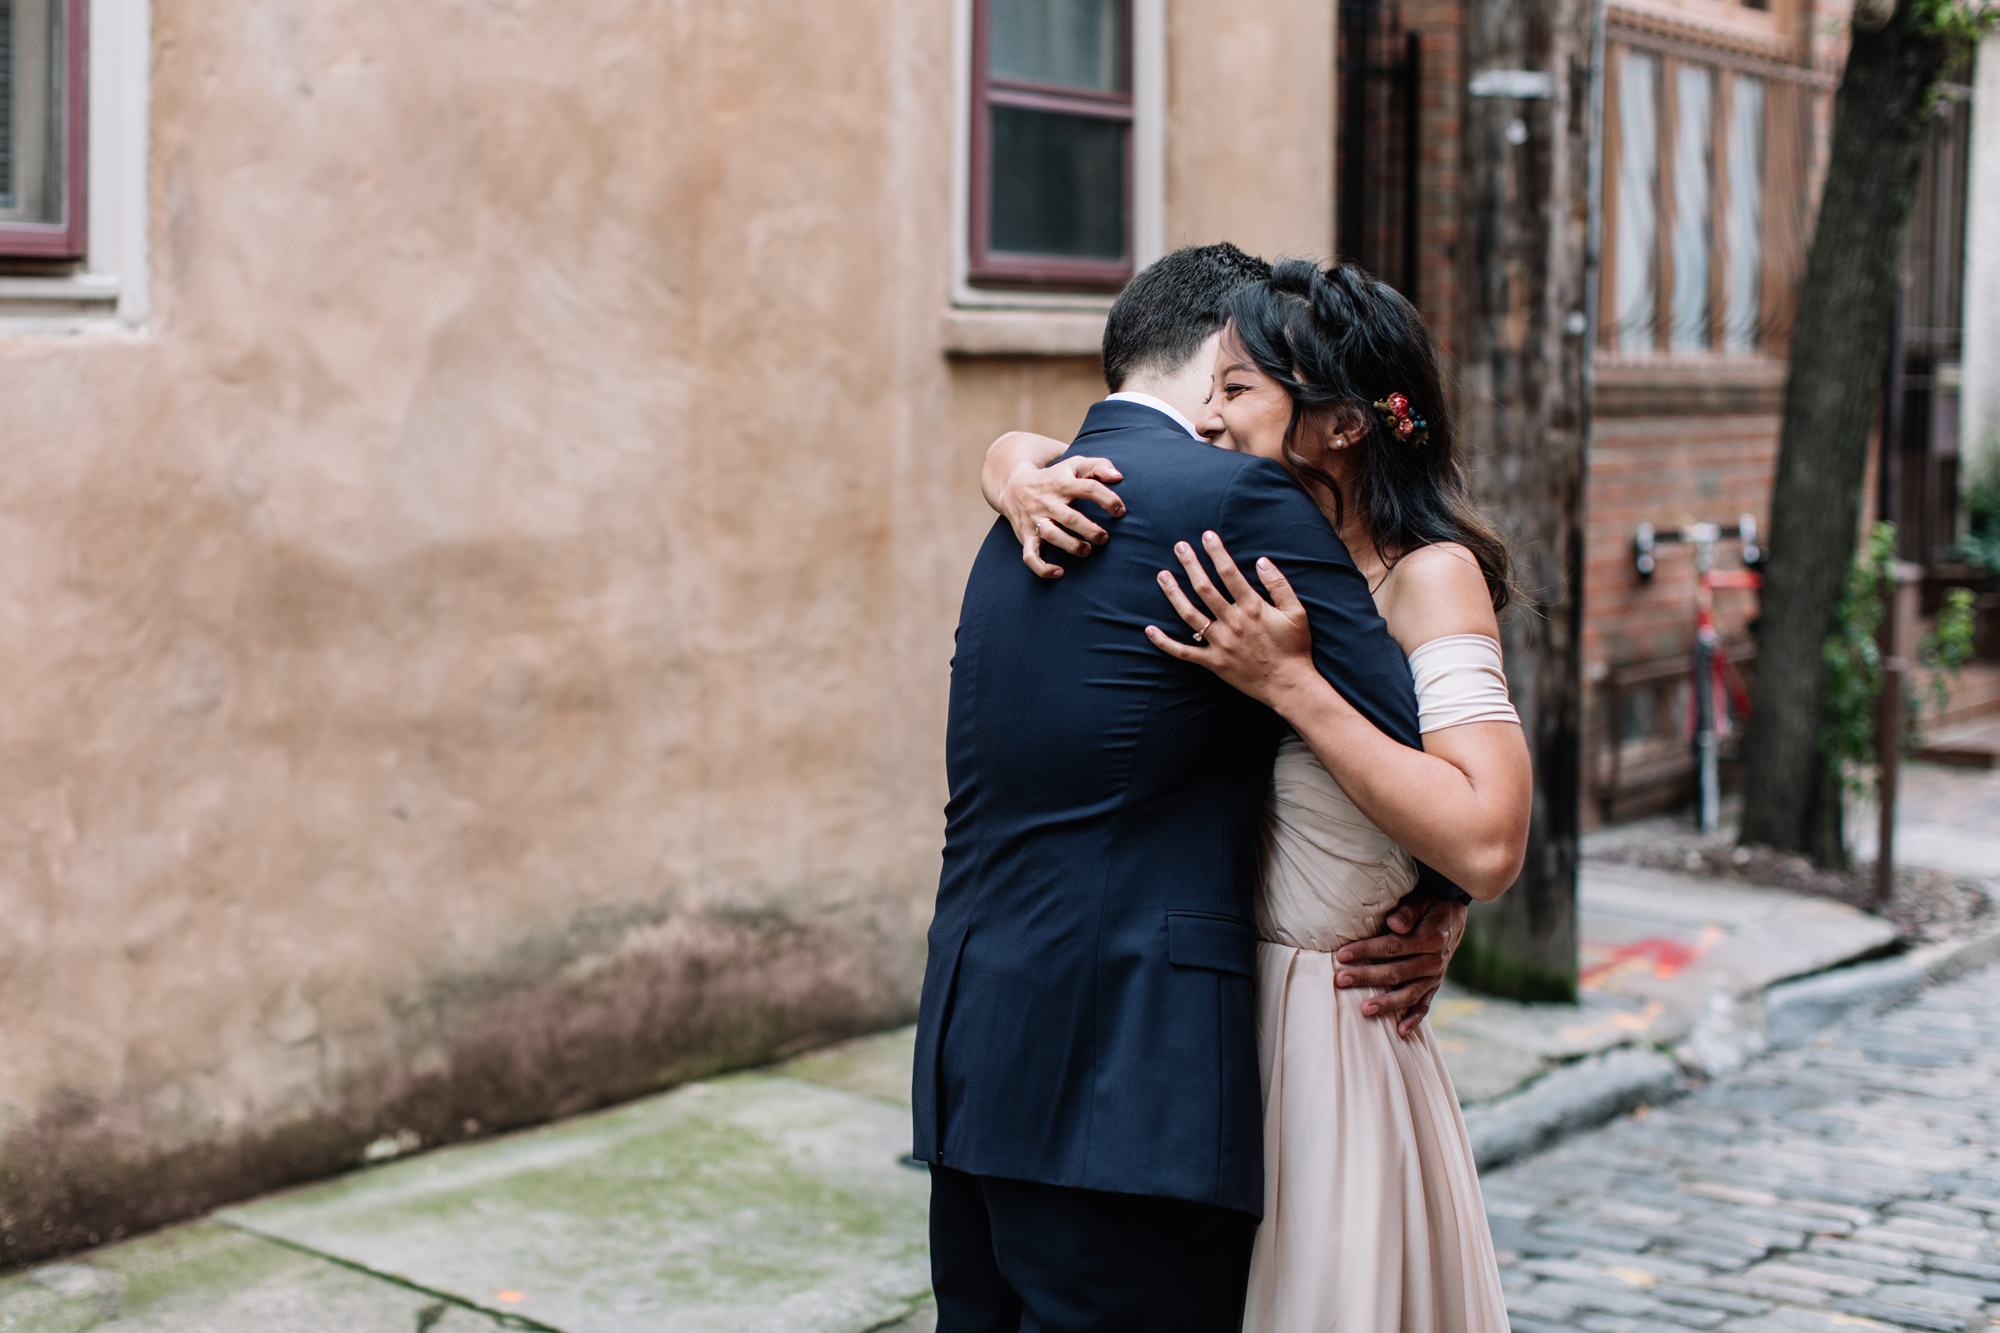 Philadelphia-wedding-planner-twisted-tail-wedding-208.jpgPhiladelphia Wedding Planner Heart & Dash | Old City Wedding at Twisted Tail | Brittney Raine Photography